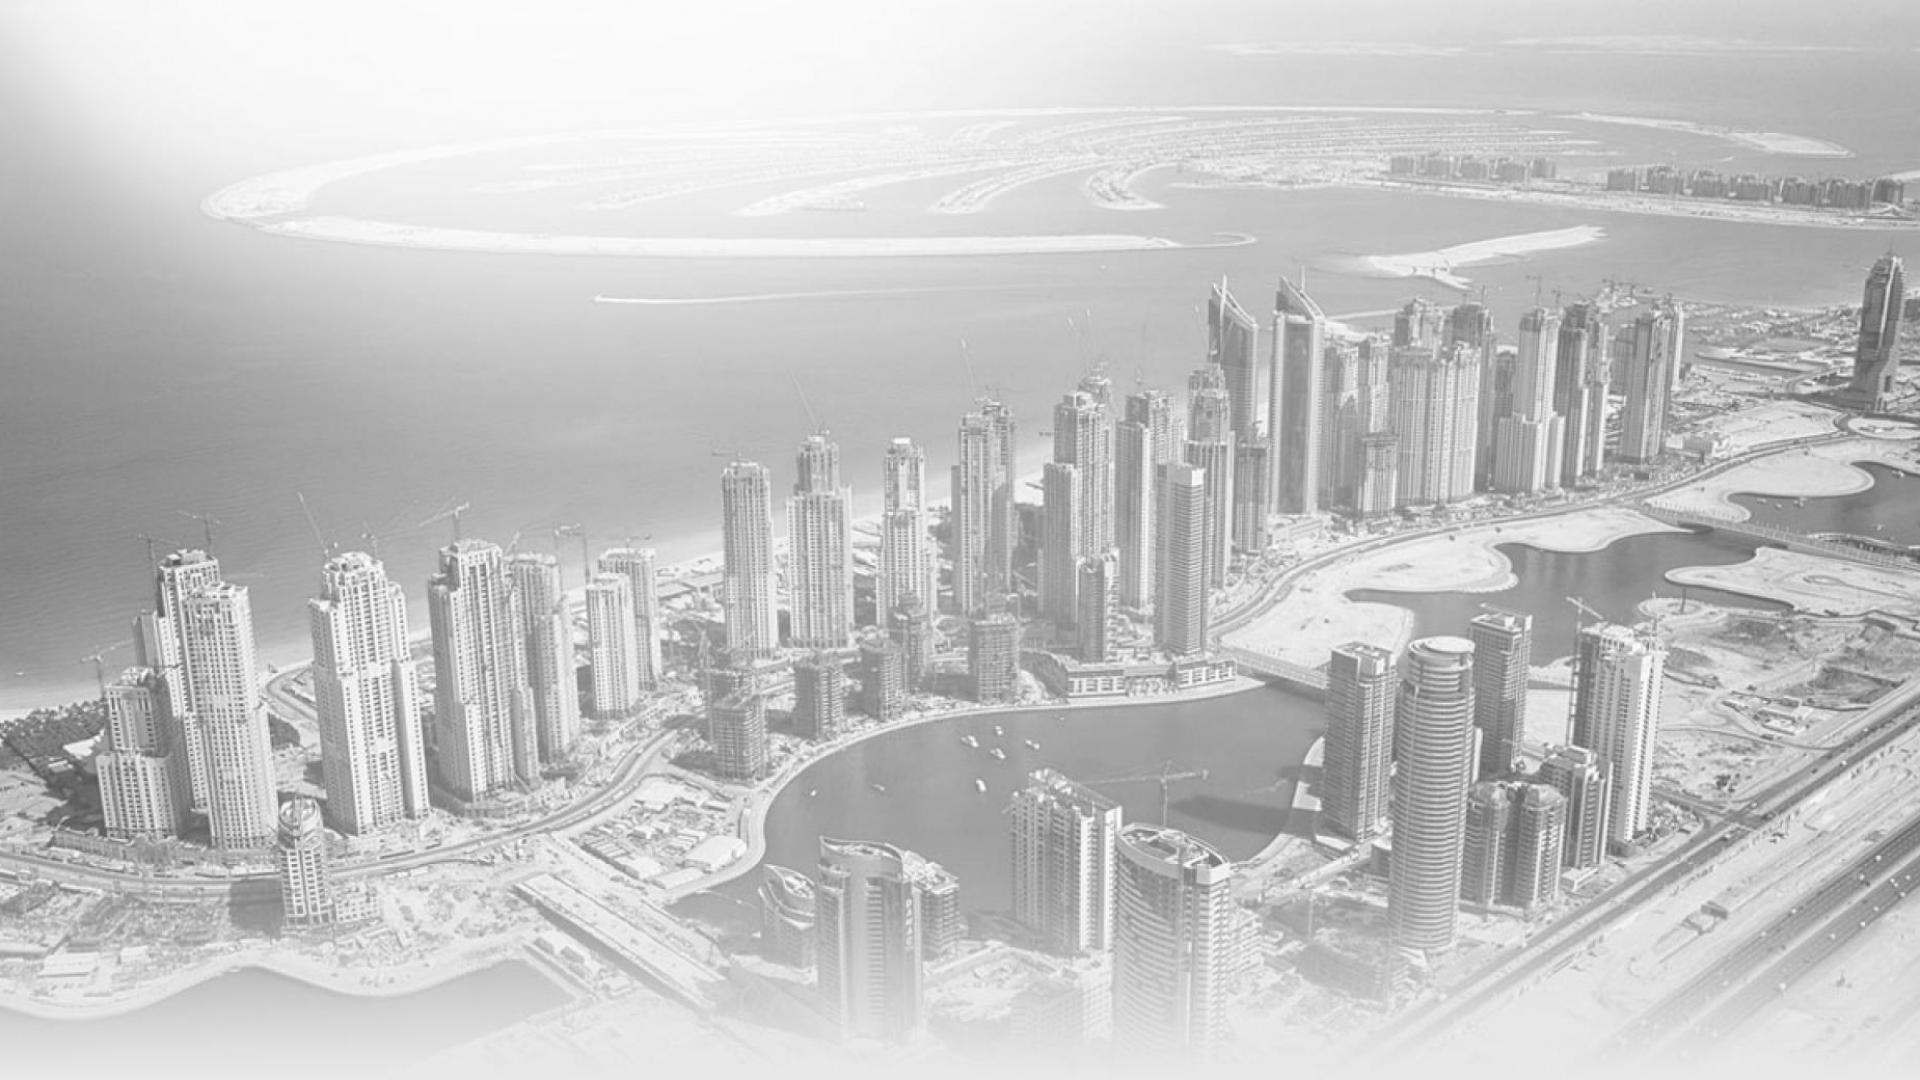 2006-dubai-ray-white-commercial-real-estate-property-for-sale-140170-1920x1080